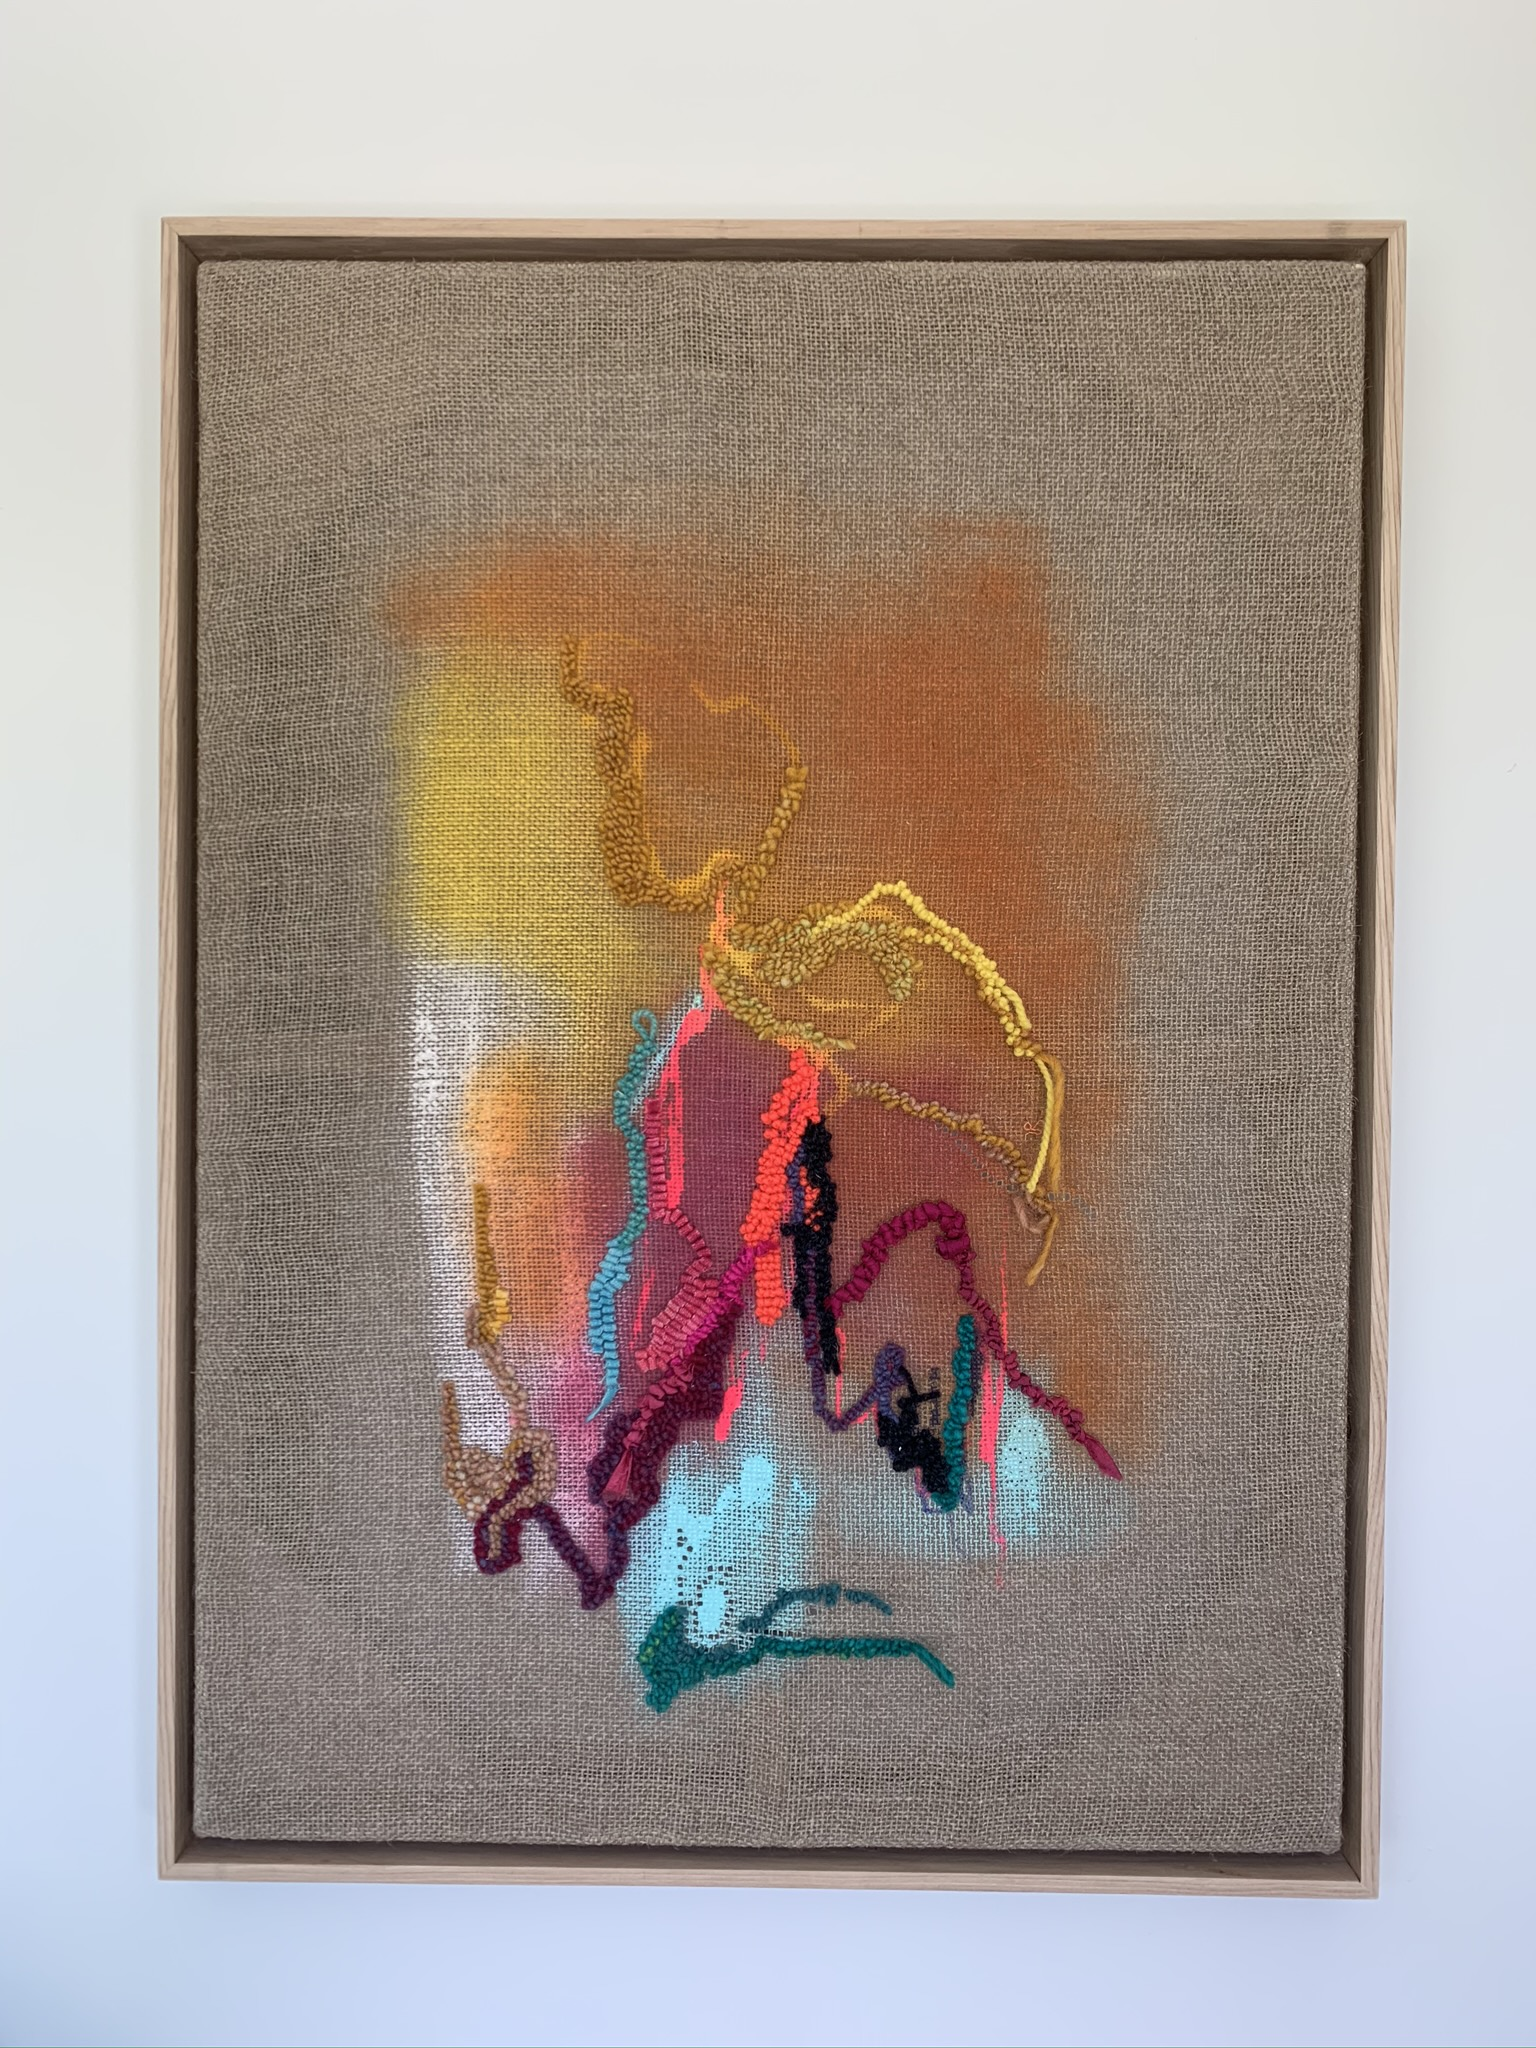 """SOLD - Evidence is All Around, acrylic paint, hooked wool, and silk on linen, 24"""" x 30"""" (framed) - Kara McIntosh"""